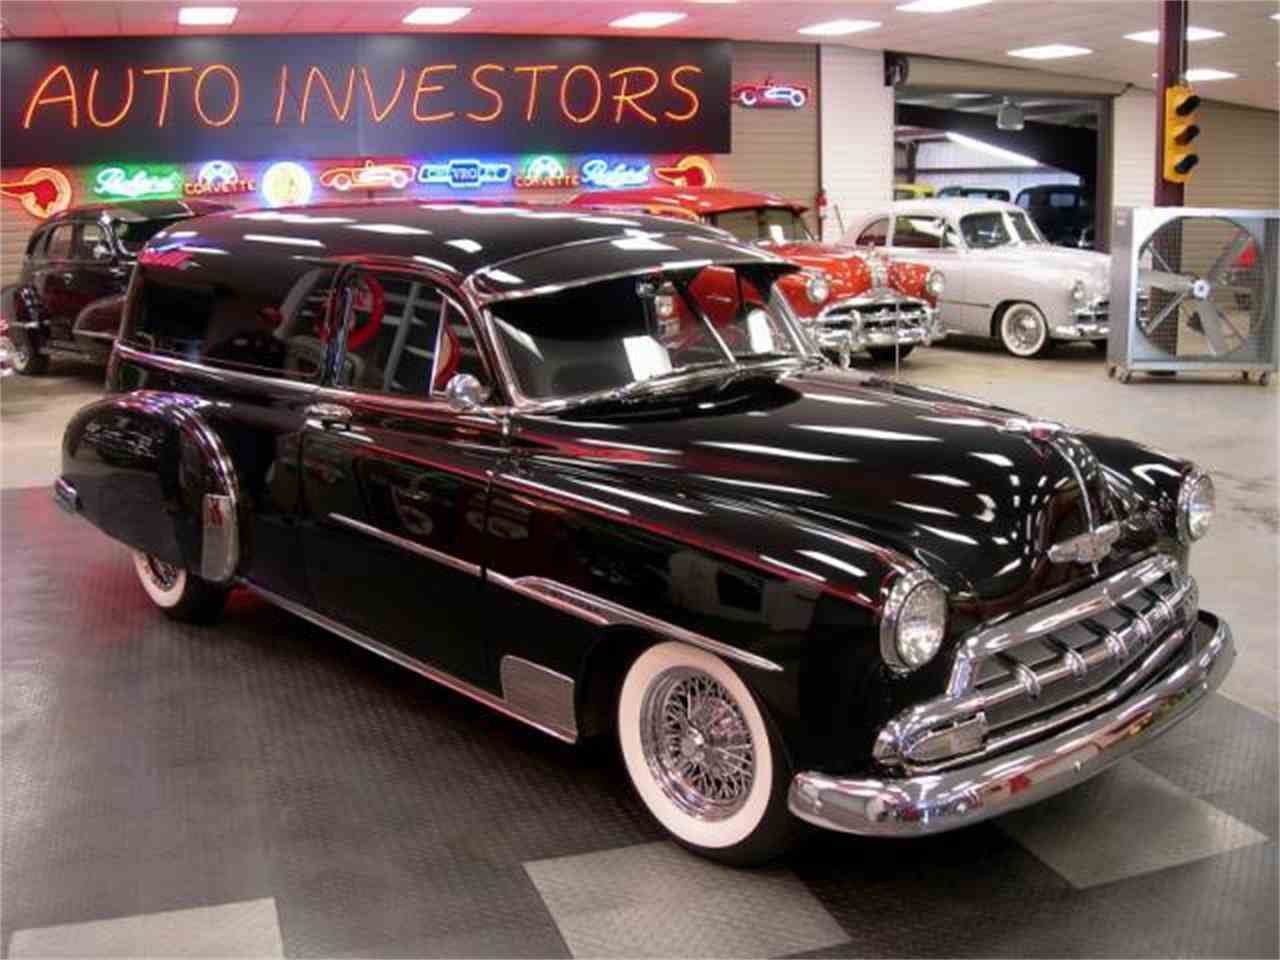 Large Picture of 1952 Chevrolet Sedan Delivery - $49,995.00 Offered by Auto Investors - F0T1